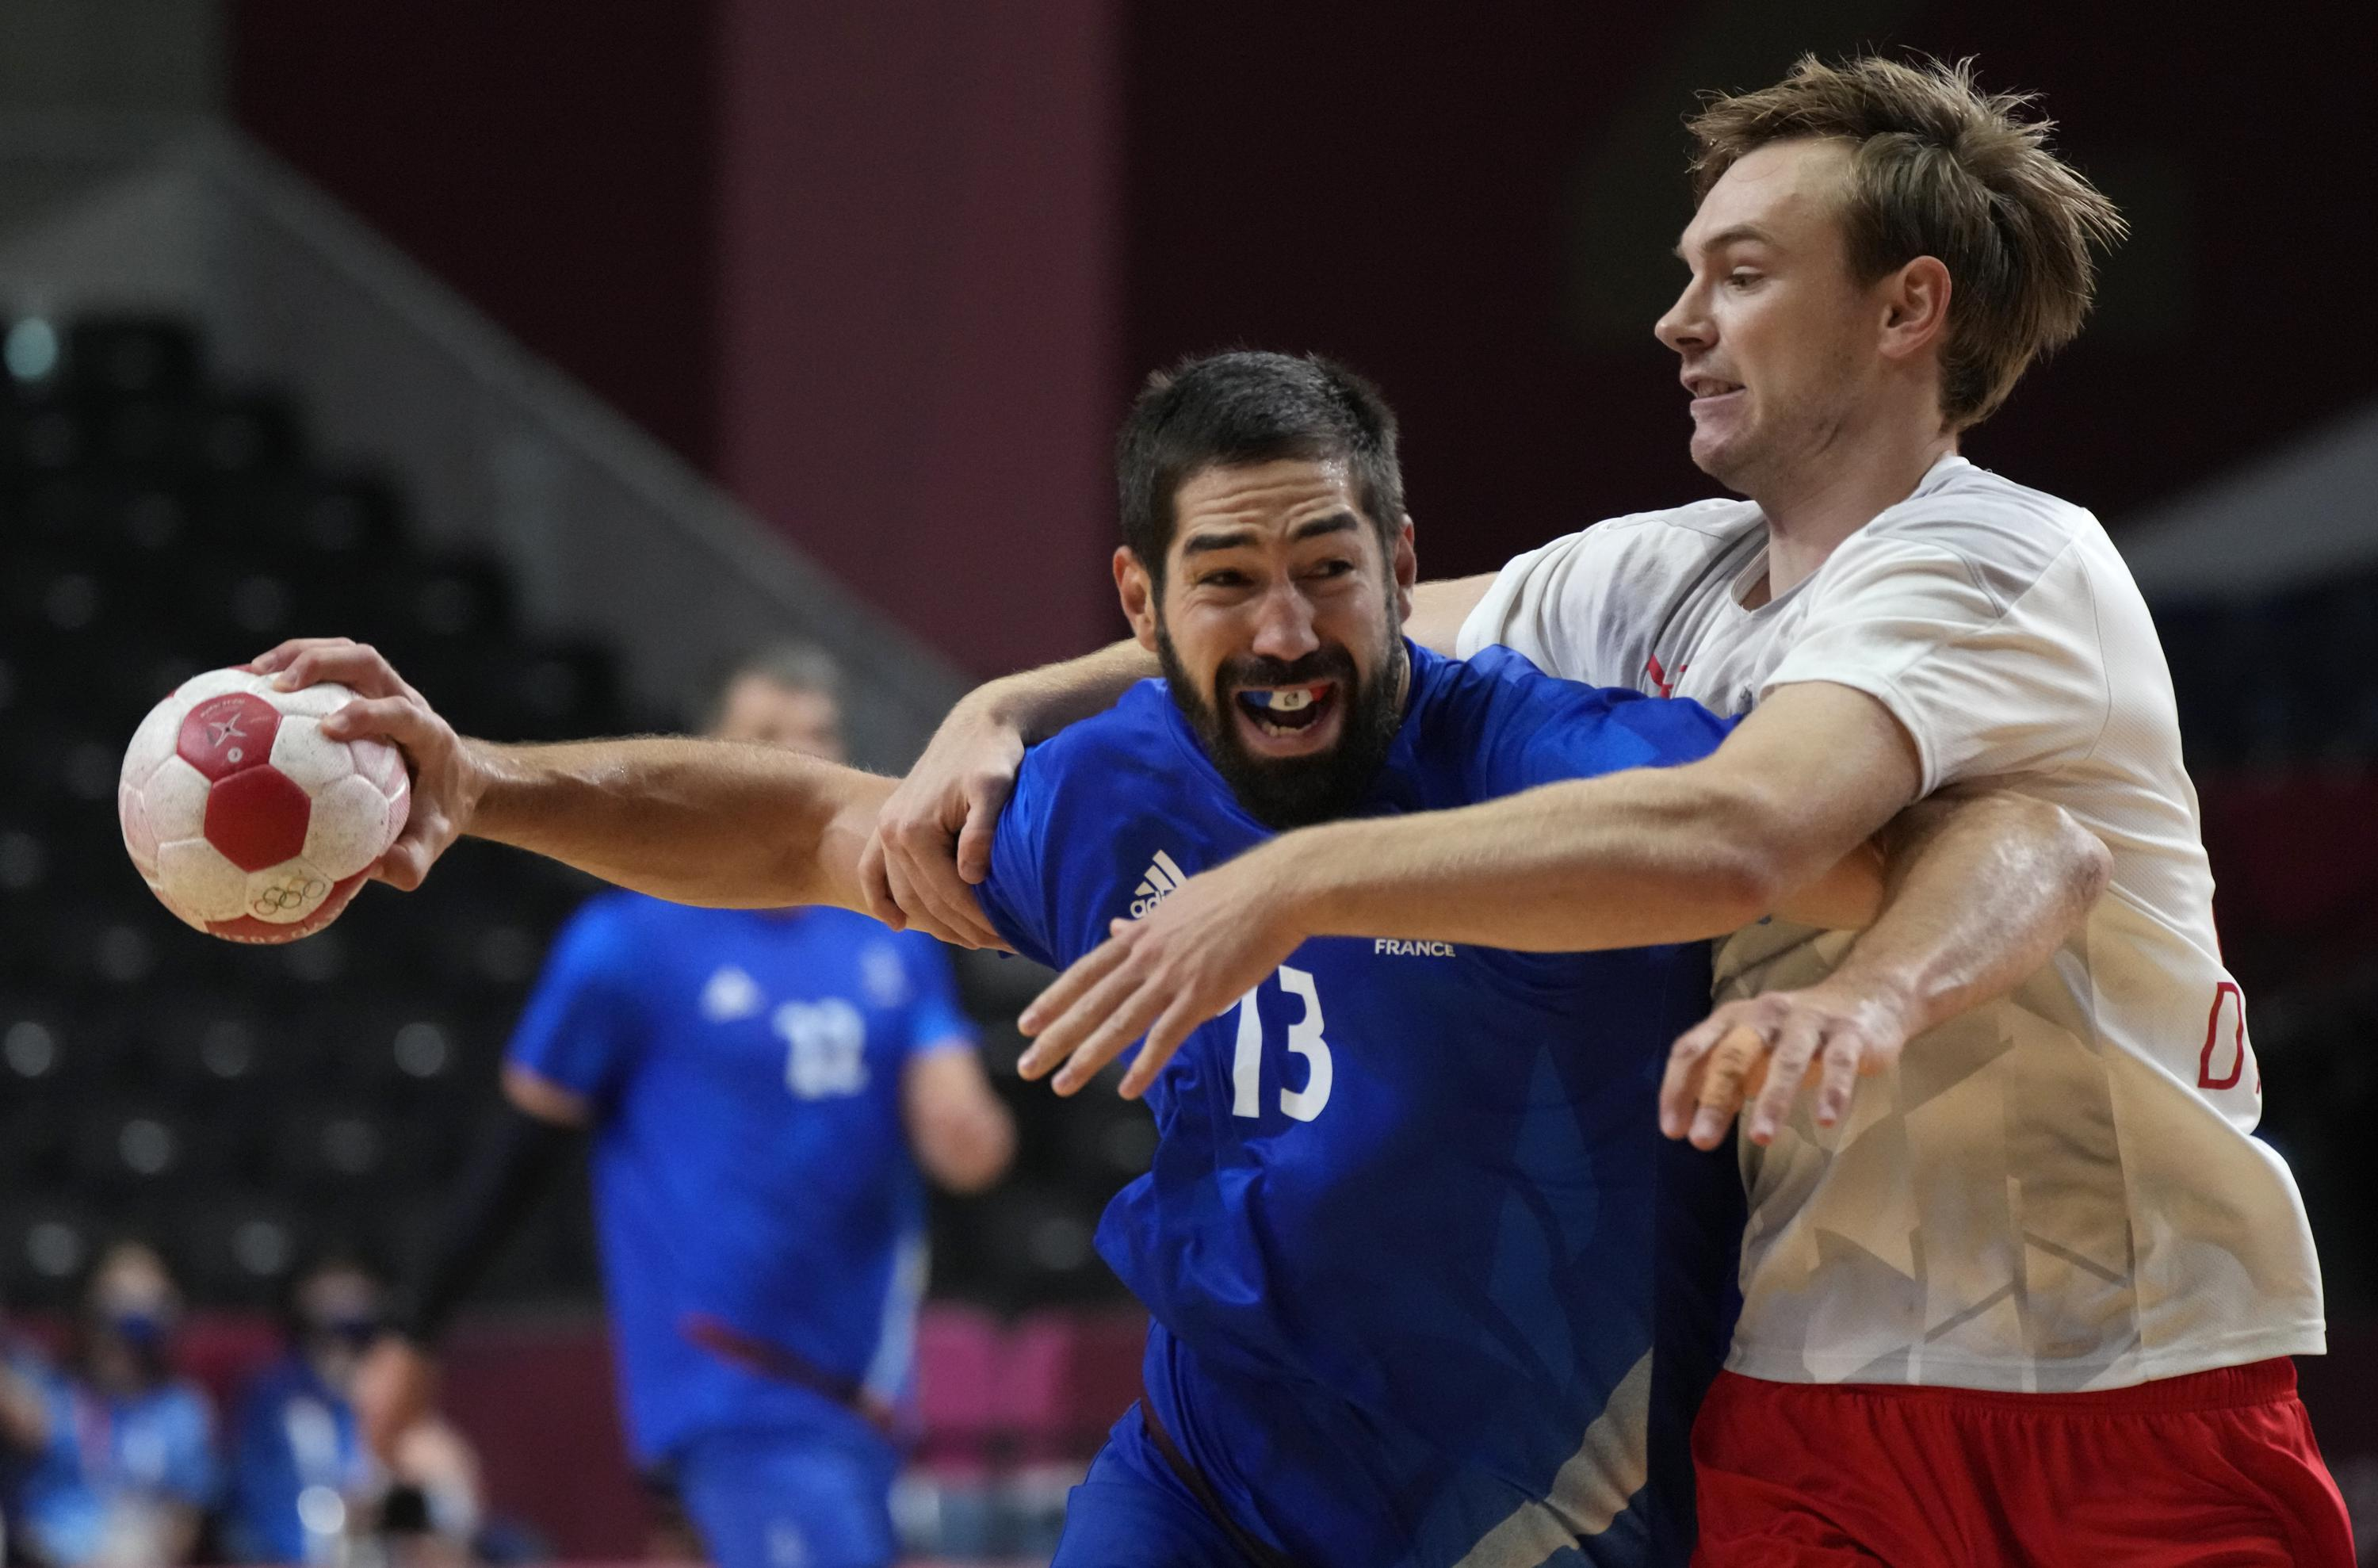 Olympic Latest: France earns gold for 1st volleyball medal